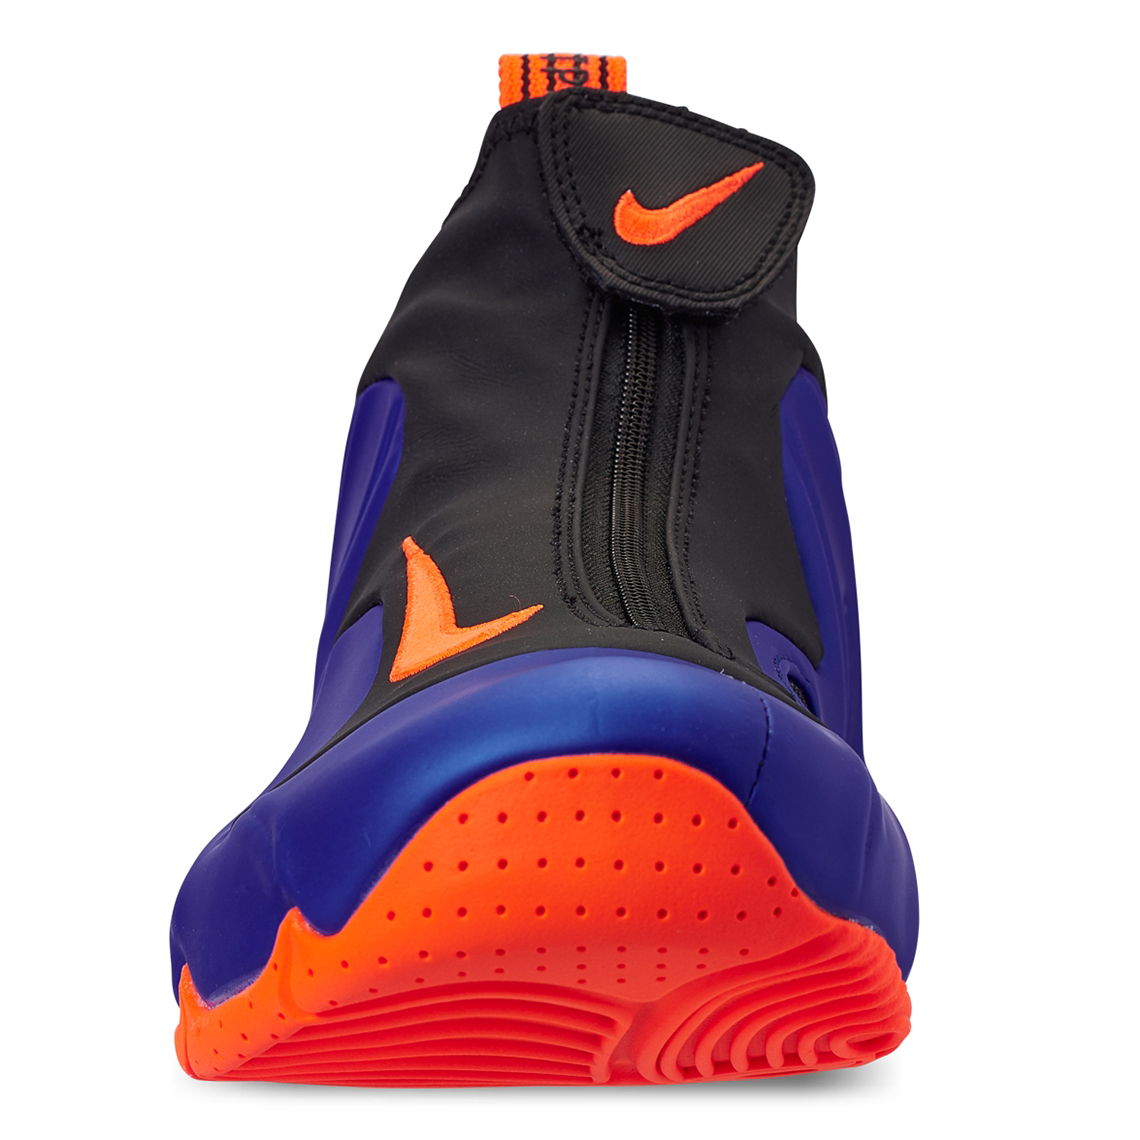 The Nike Air Flightposite Returns In A Knicks Themed Colorway 347f8dcde3